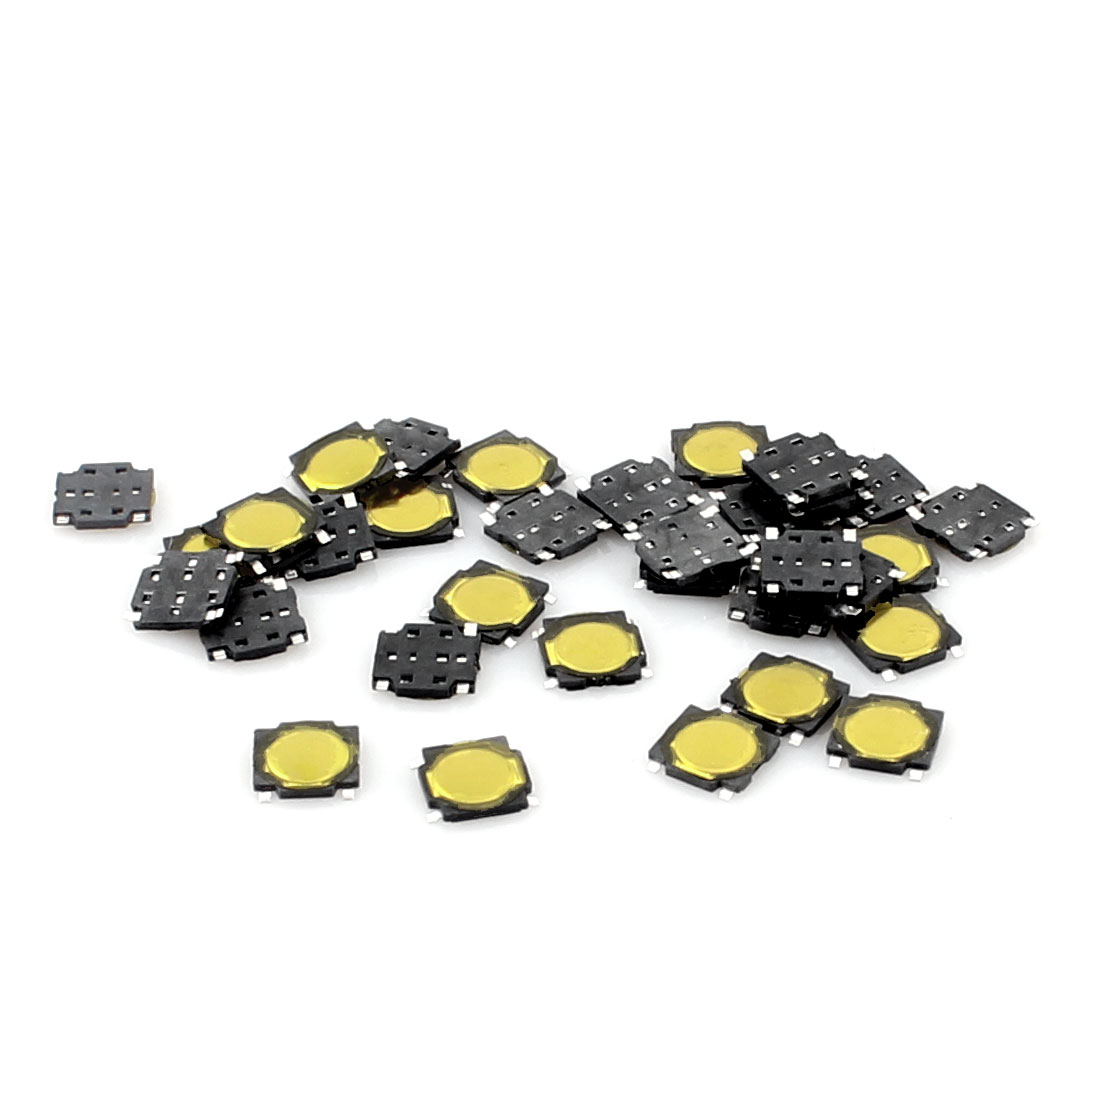 20 Pcs 4.5x4.5x0.5mm 4-Pin Momentary Push Button PCB SMD SMT Tactile Tact Switch